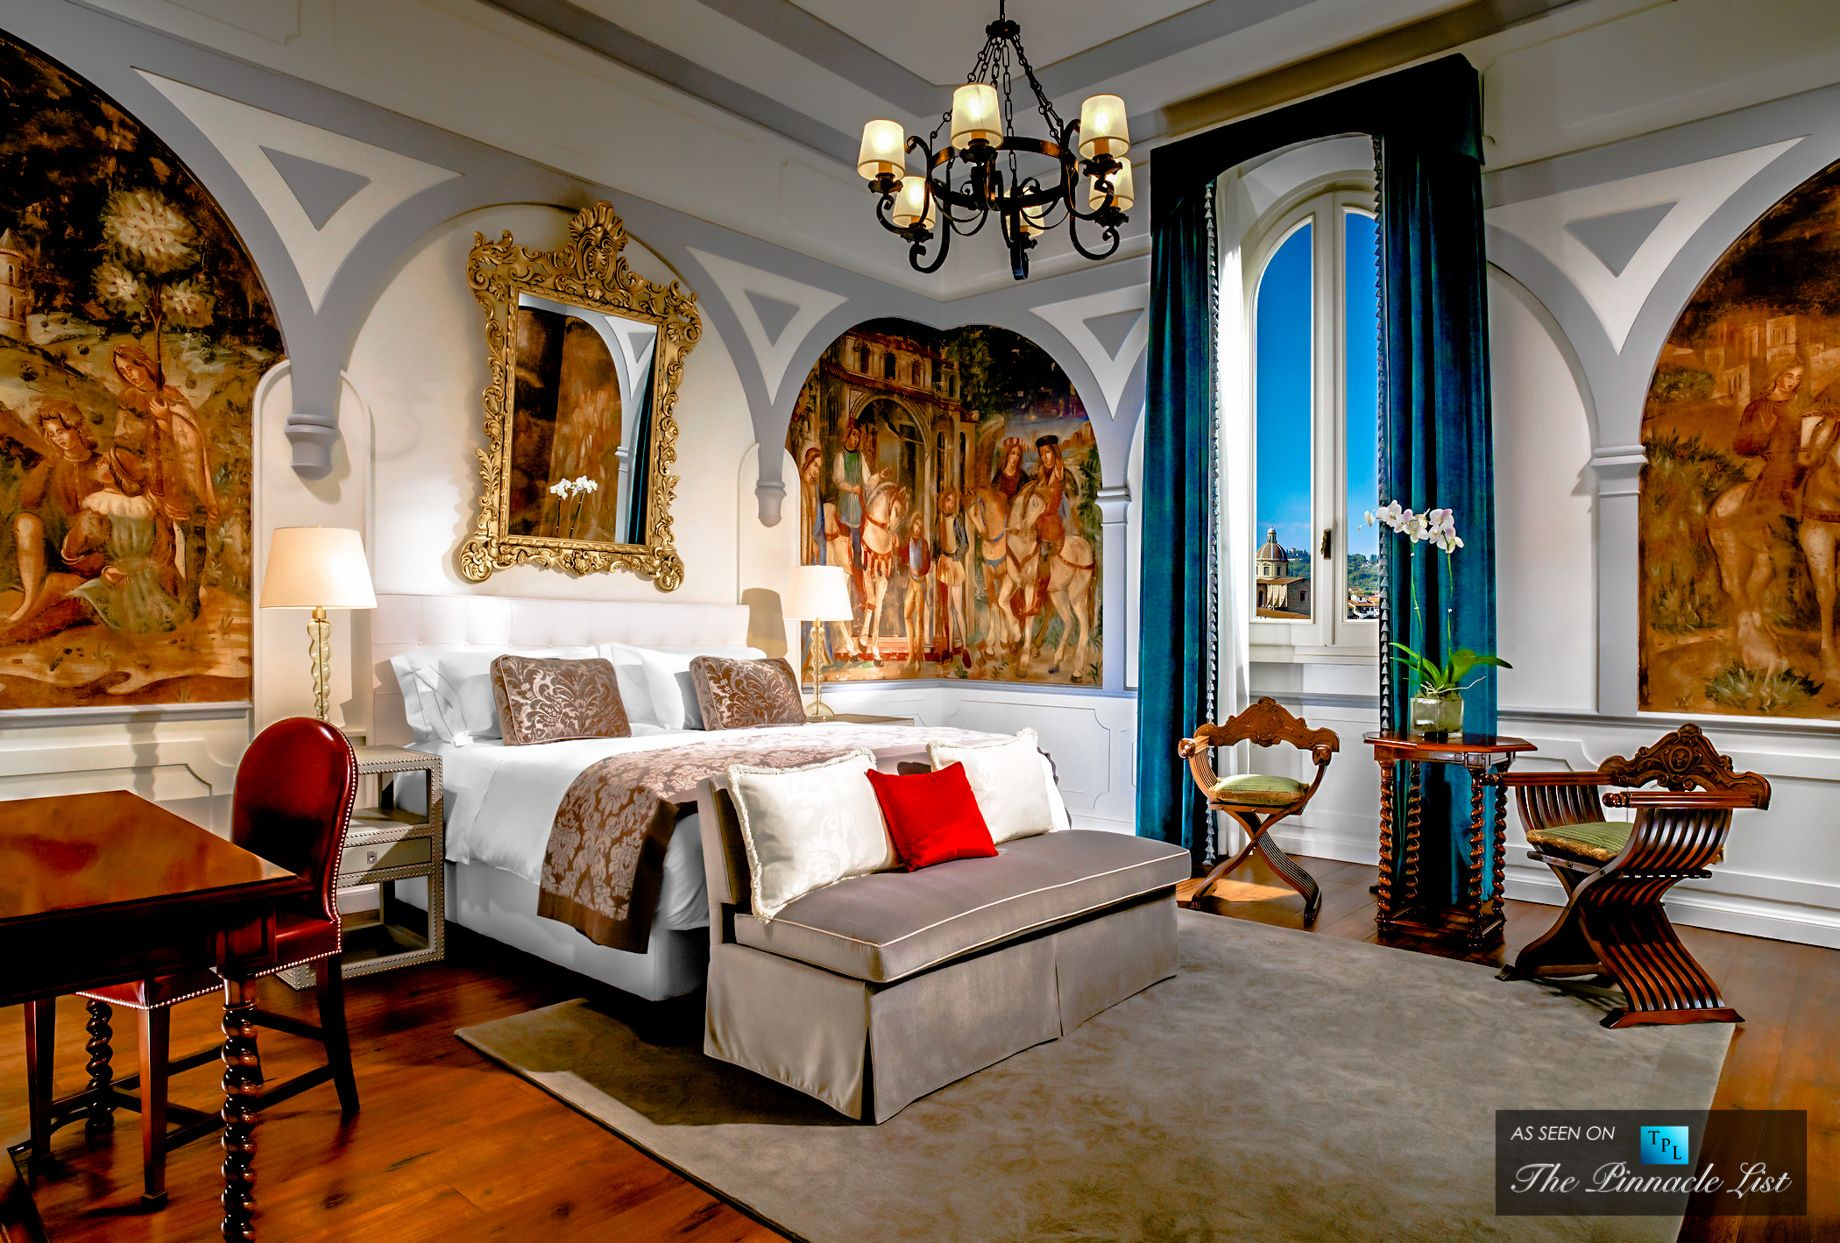 Wall Art Hotel Florence Italy | 2018 World's Best Hotels